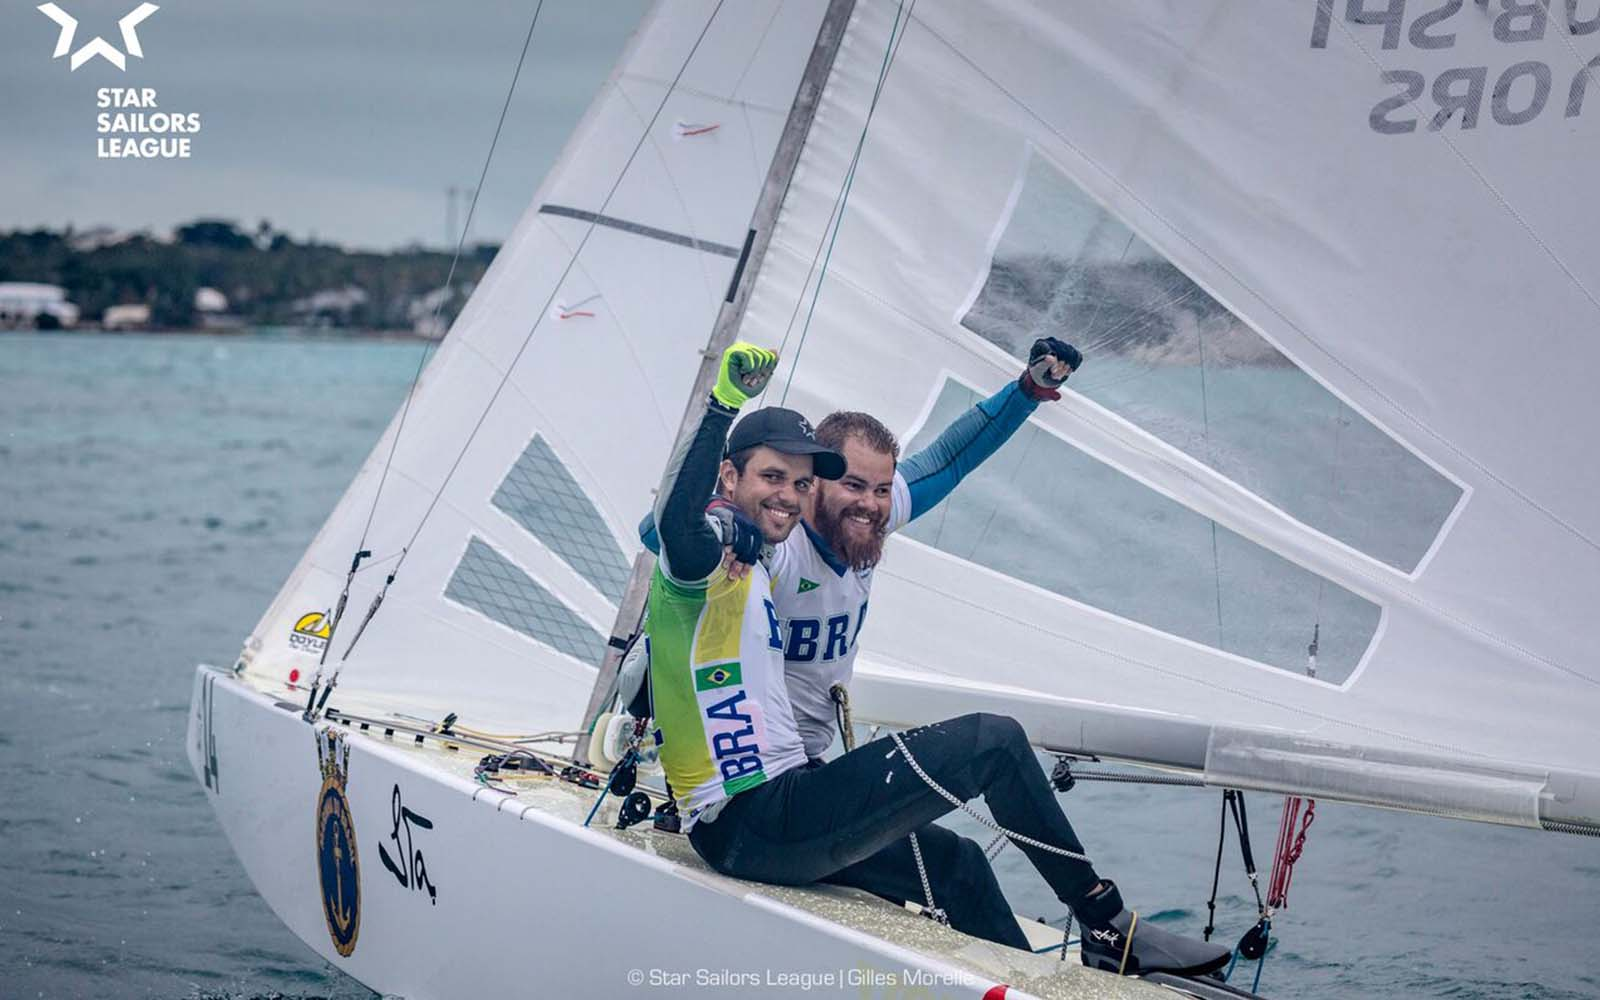 Brasil Star Sailors League Nations Gold Cup - boat shopping